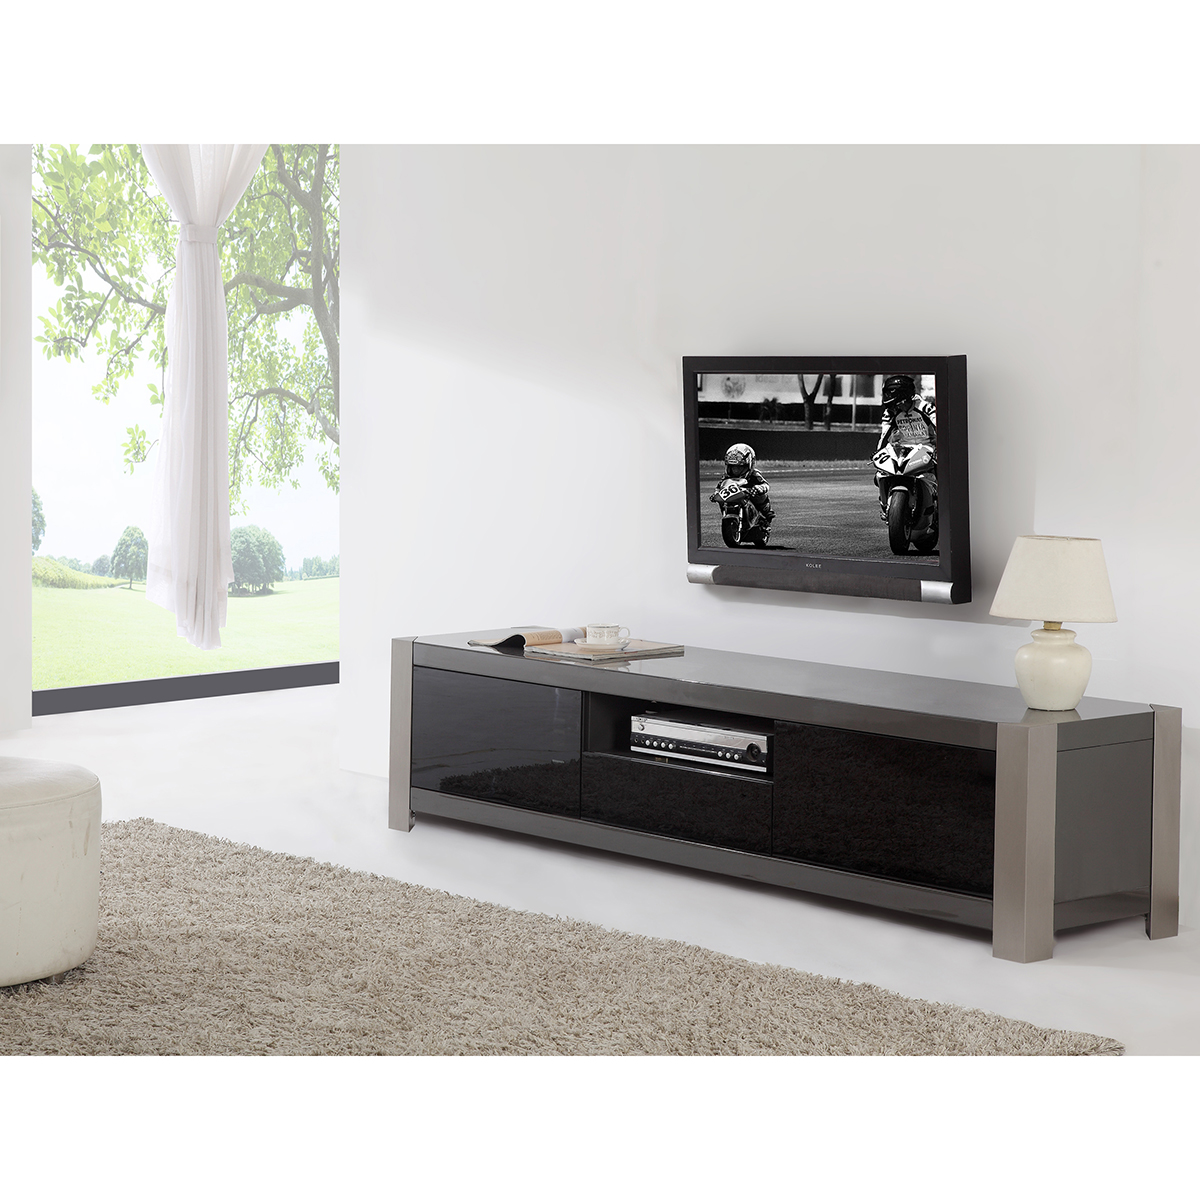 bmodern bmgry coordinator  contemporary tv stand in gray  - coordinator  contemporary tv stand in gray high gloss  stainless steel